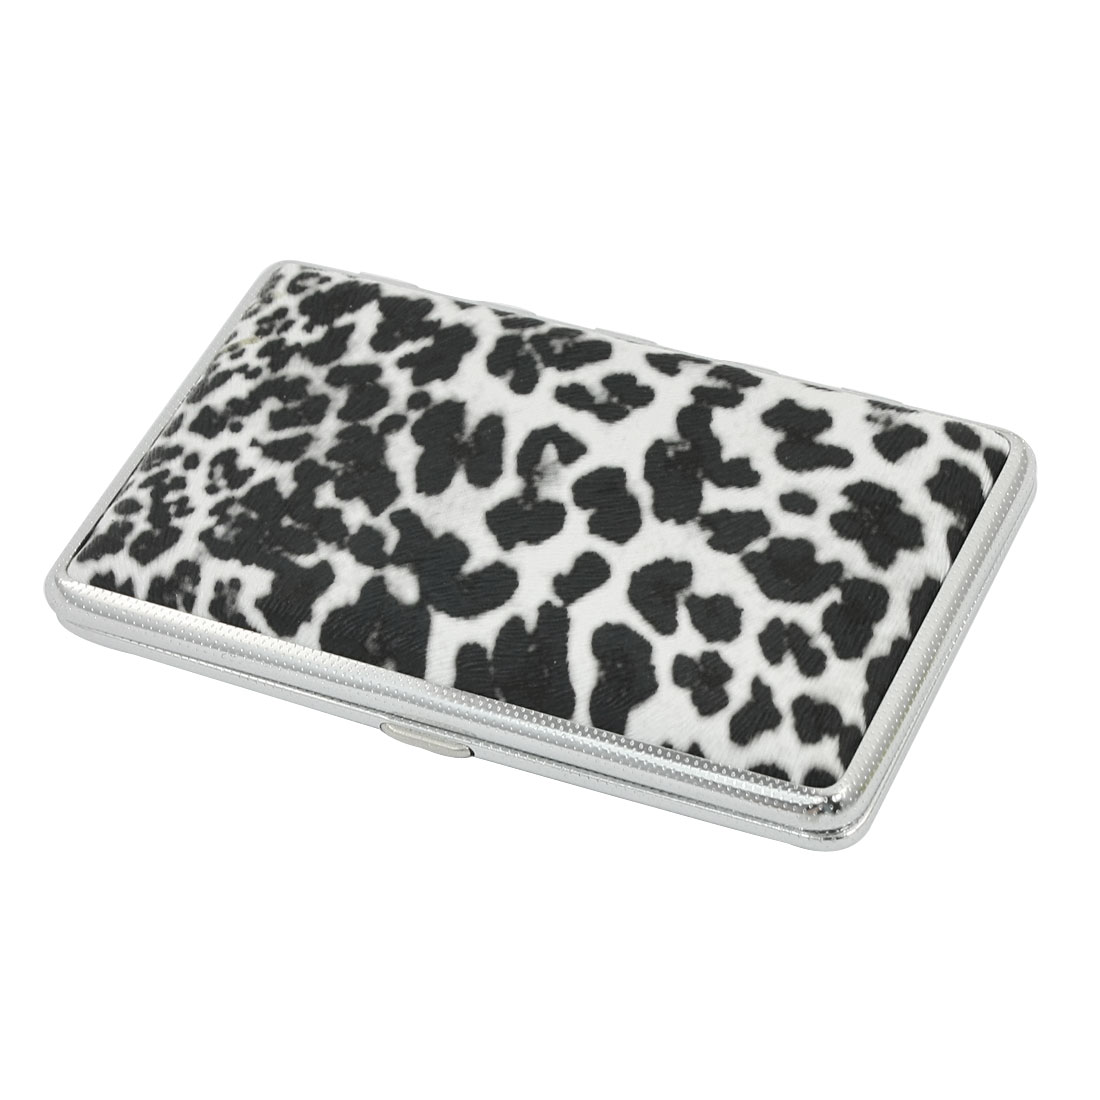 Black White Leopard Pattern Rectangle Shape Faux Leather Two Sides Hinge Closure Metal Case Box Holder Container for 14pcs Cigarette